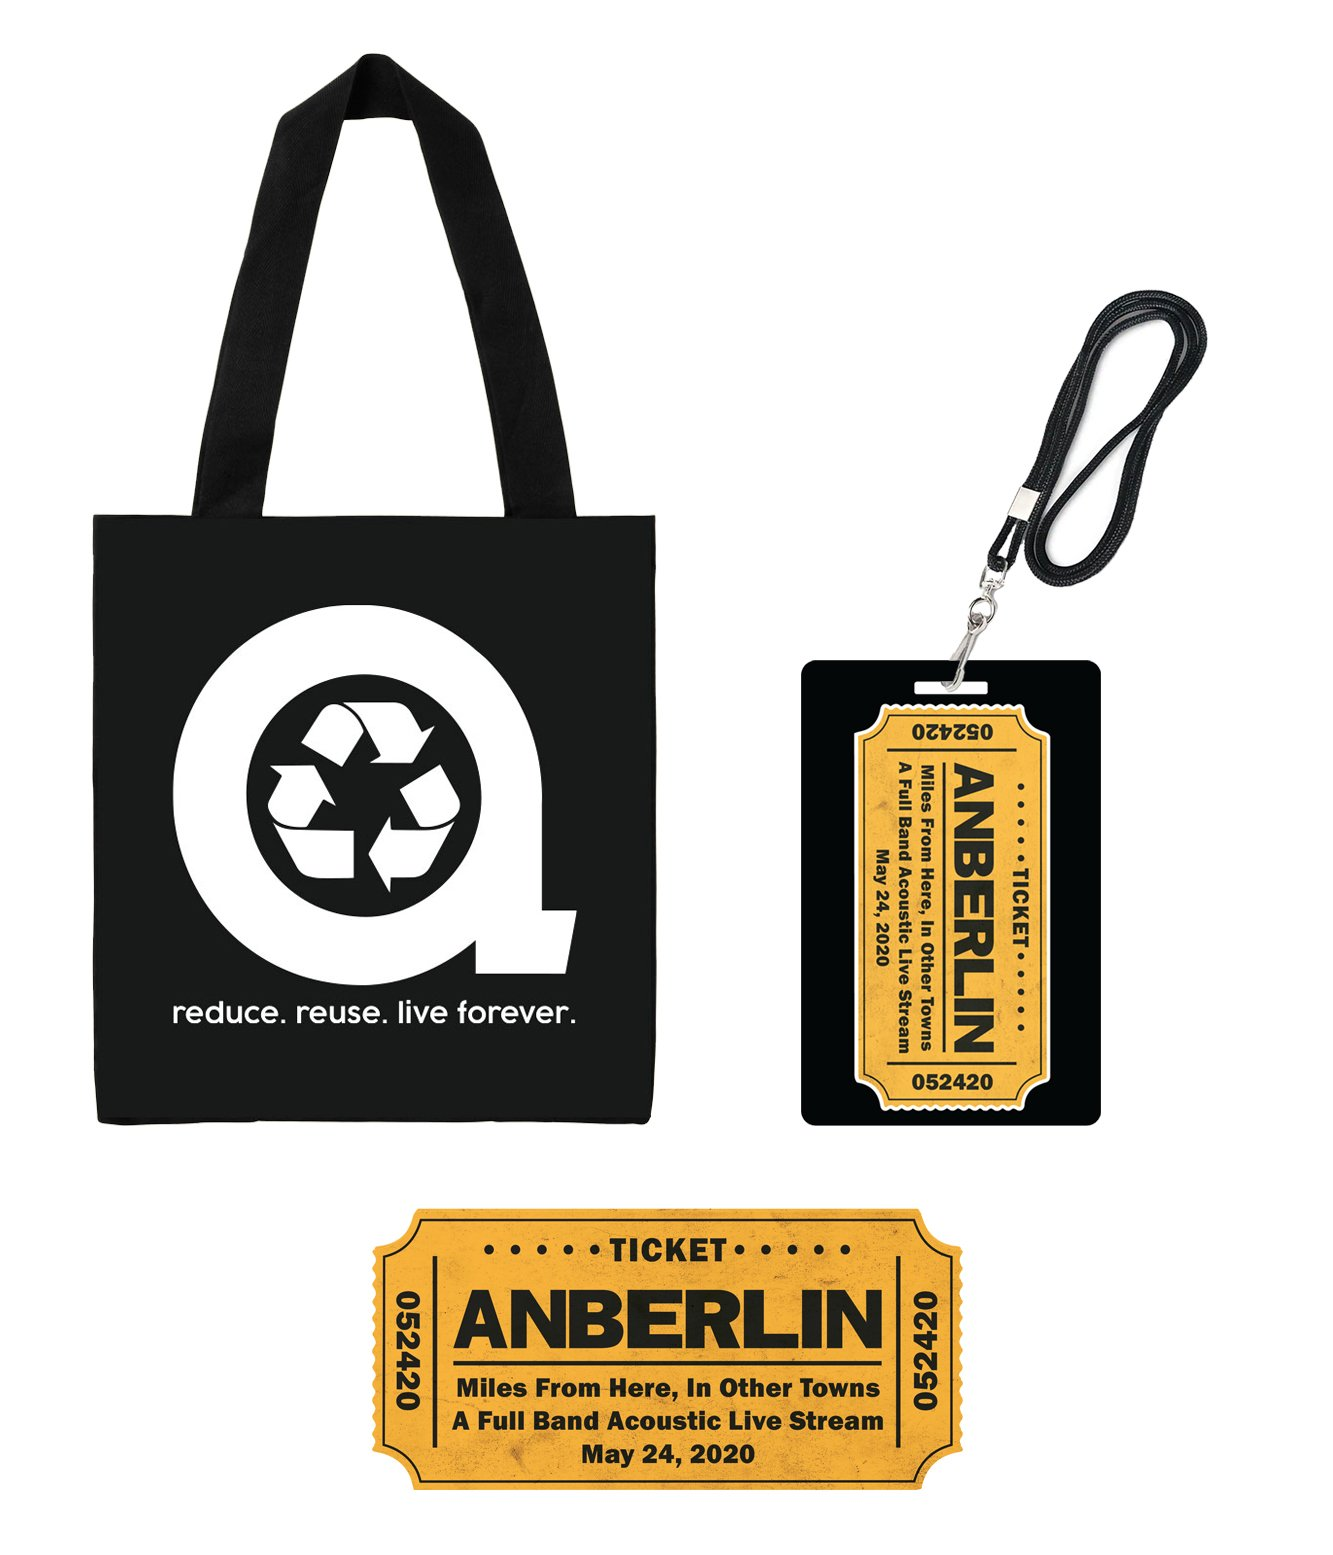 Anberlin Miles From Here In Other Towns - Live Stream Bundle #6